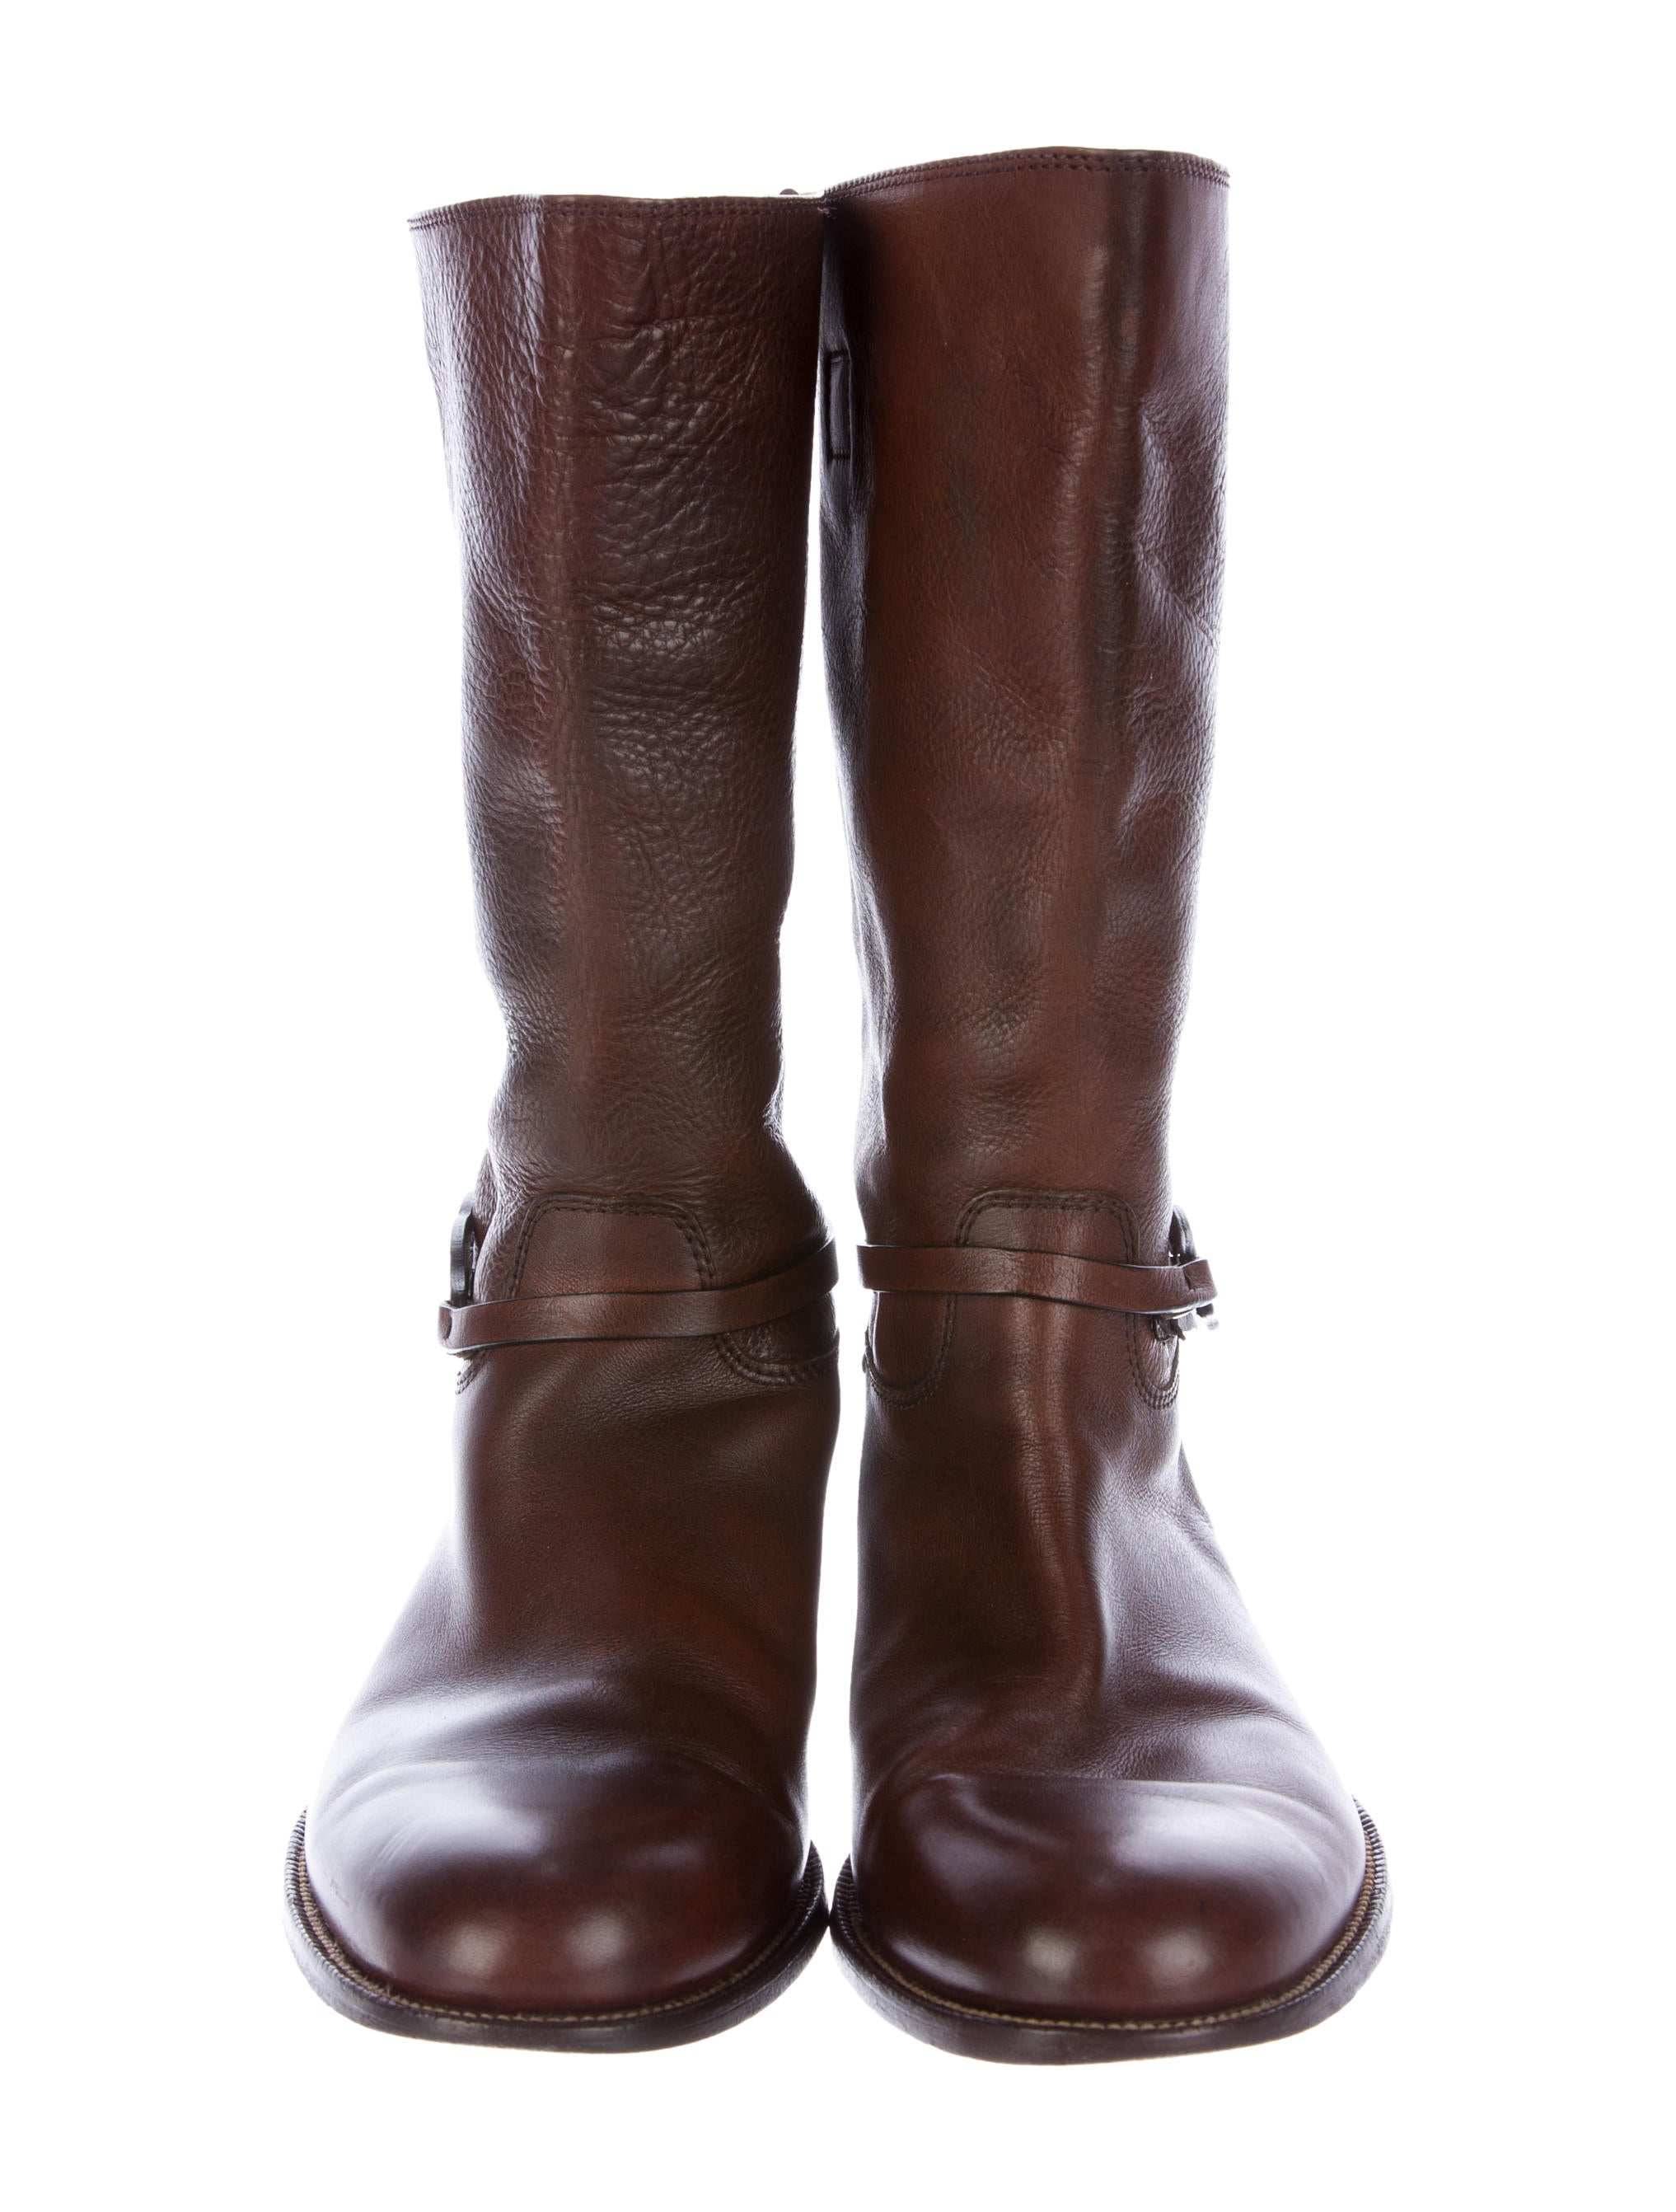 Womens Riding Boots We have a giant assortment of women's riding boots for the horseback riding and fashion enthusiast. Riding boots come up high enough to protect the rider's leg from the saddle, and they have a distinct heel and protected toe.